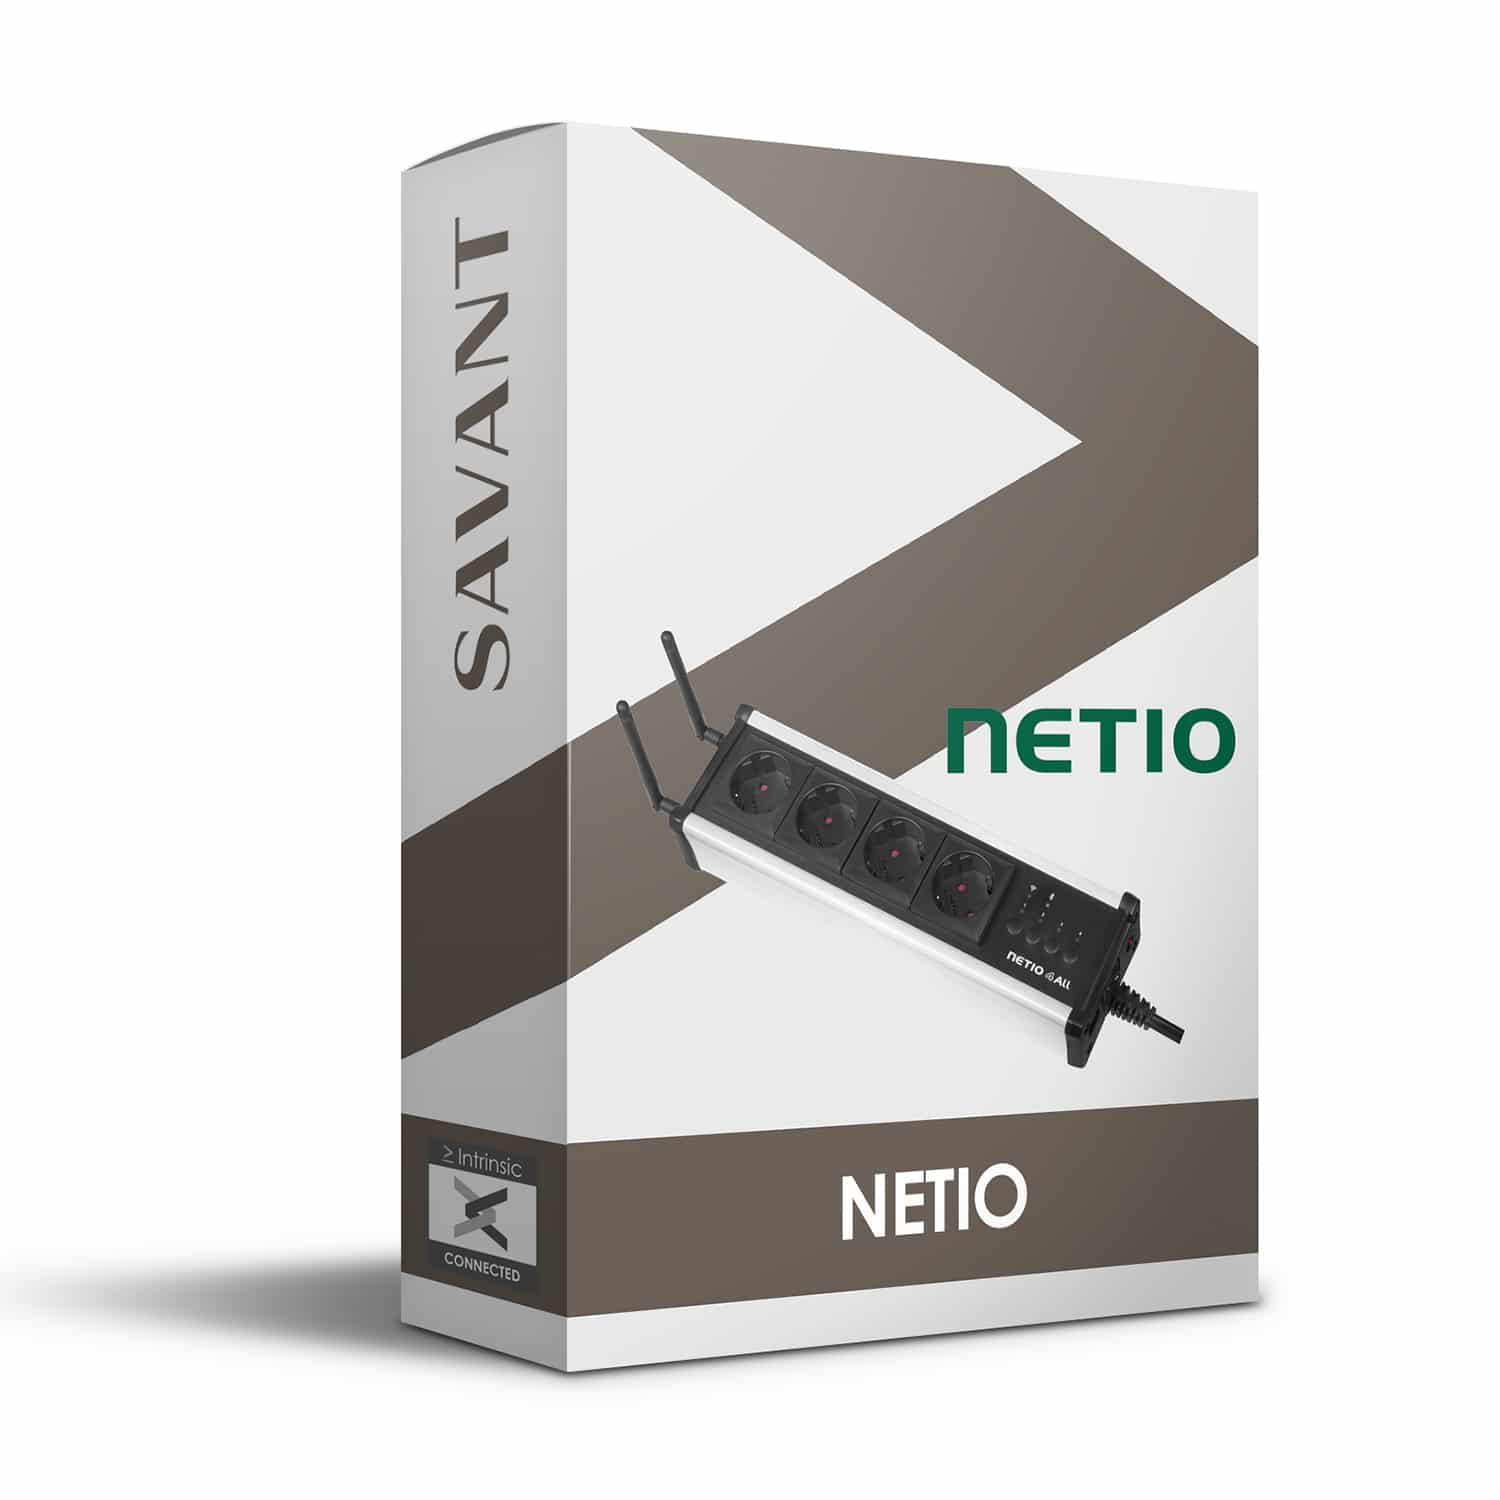 Netio Profile for Savant